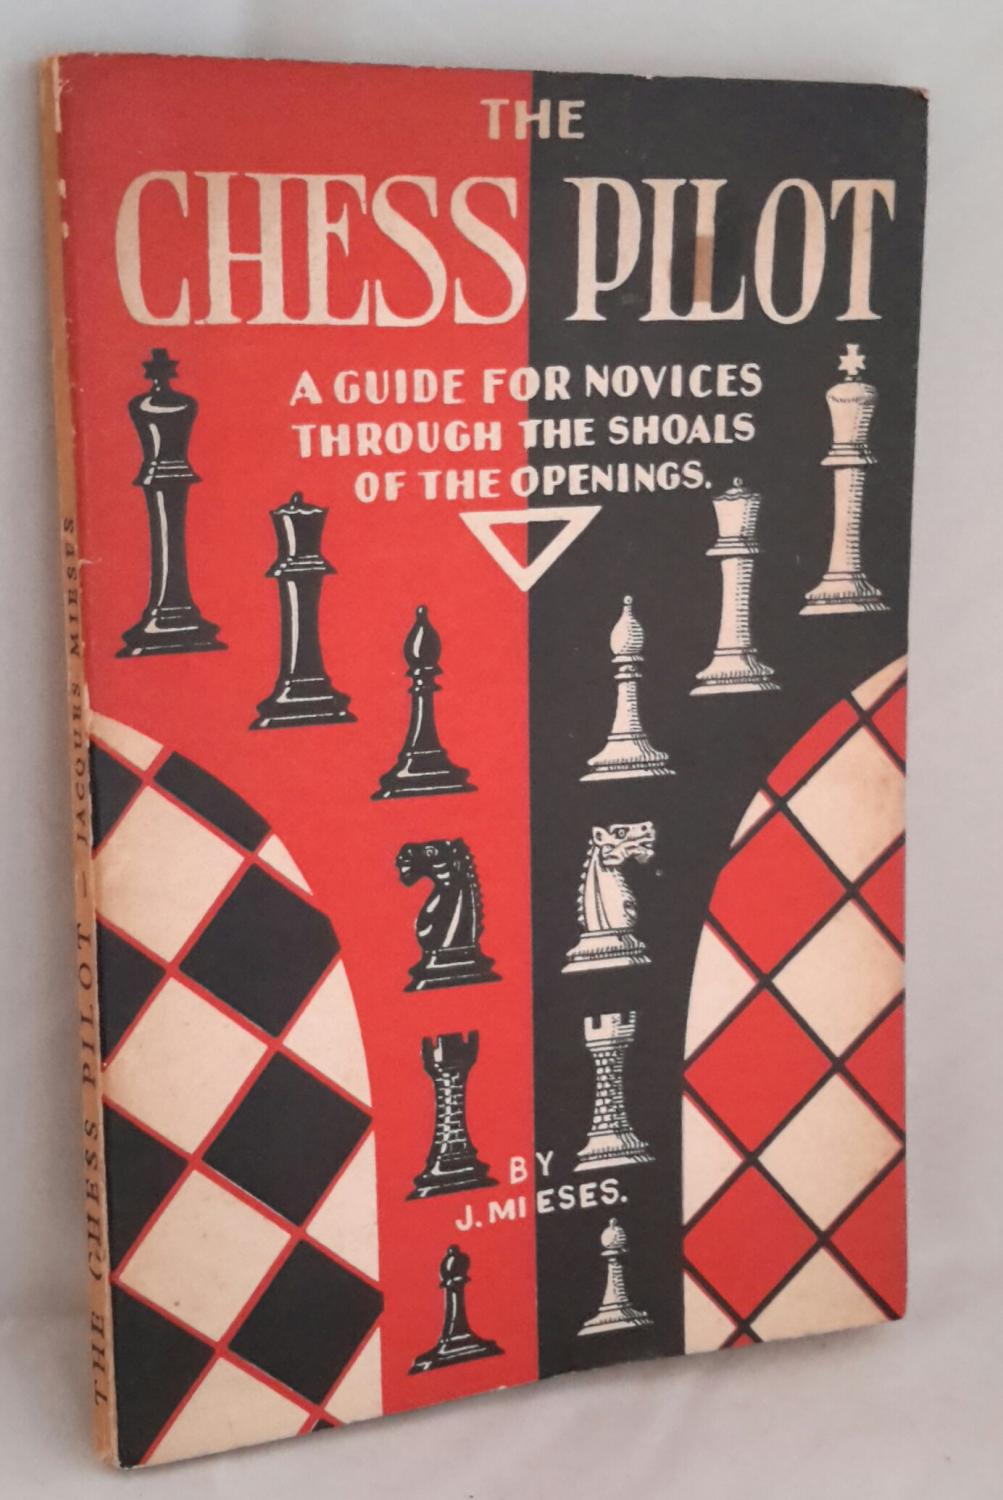 The Chess Pilot, Jacques Mieses, Williams & Norgate. London. 1947. First Edition